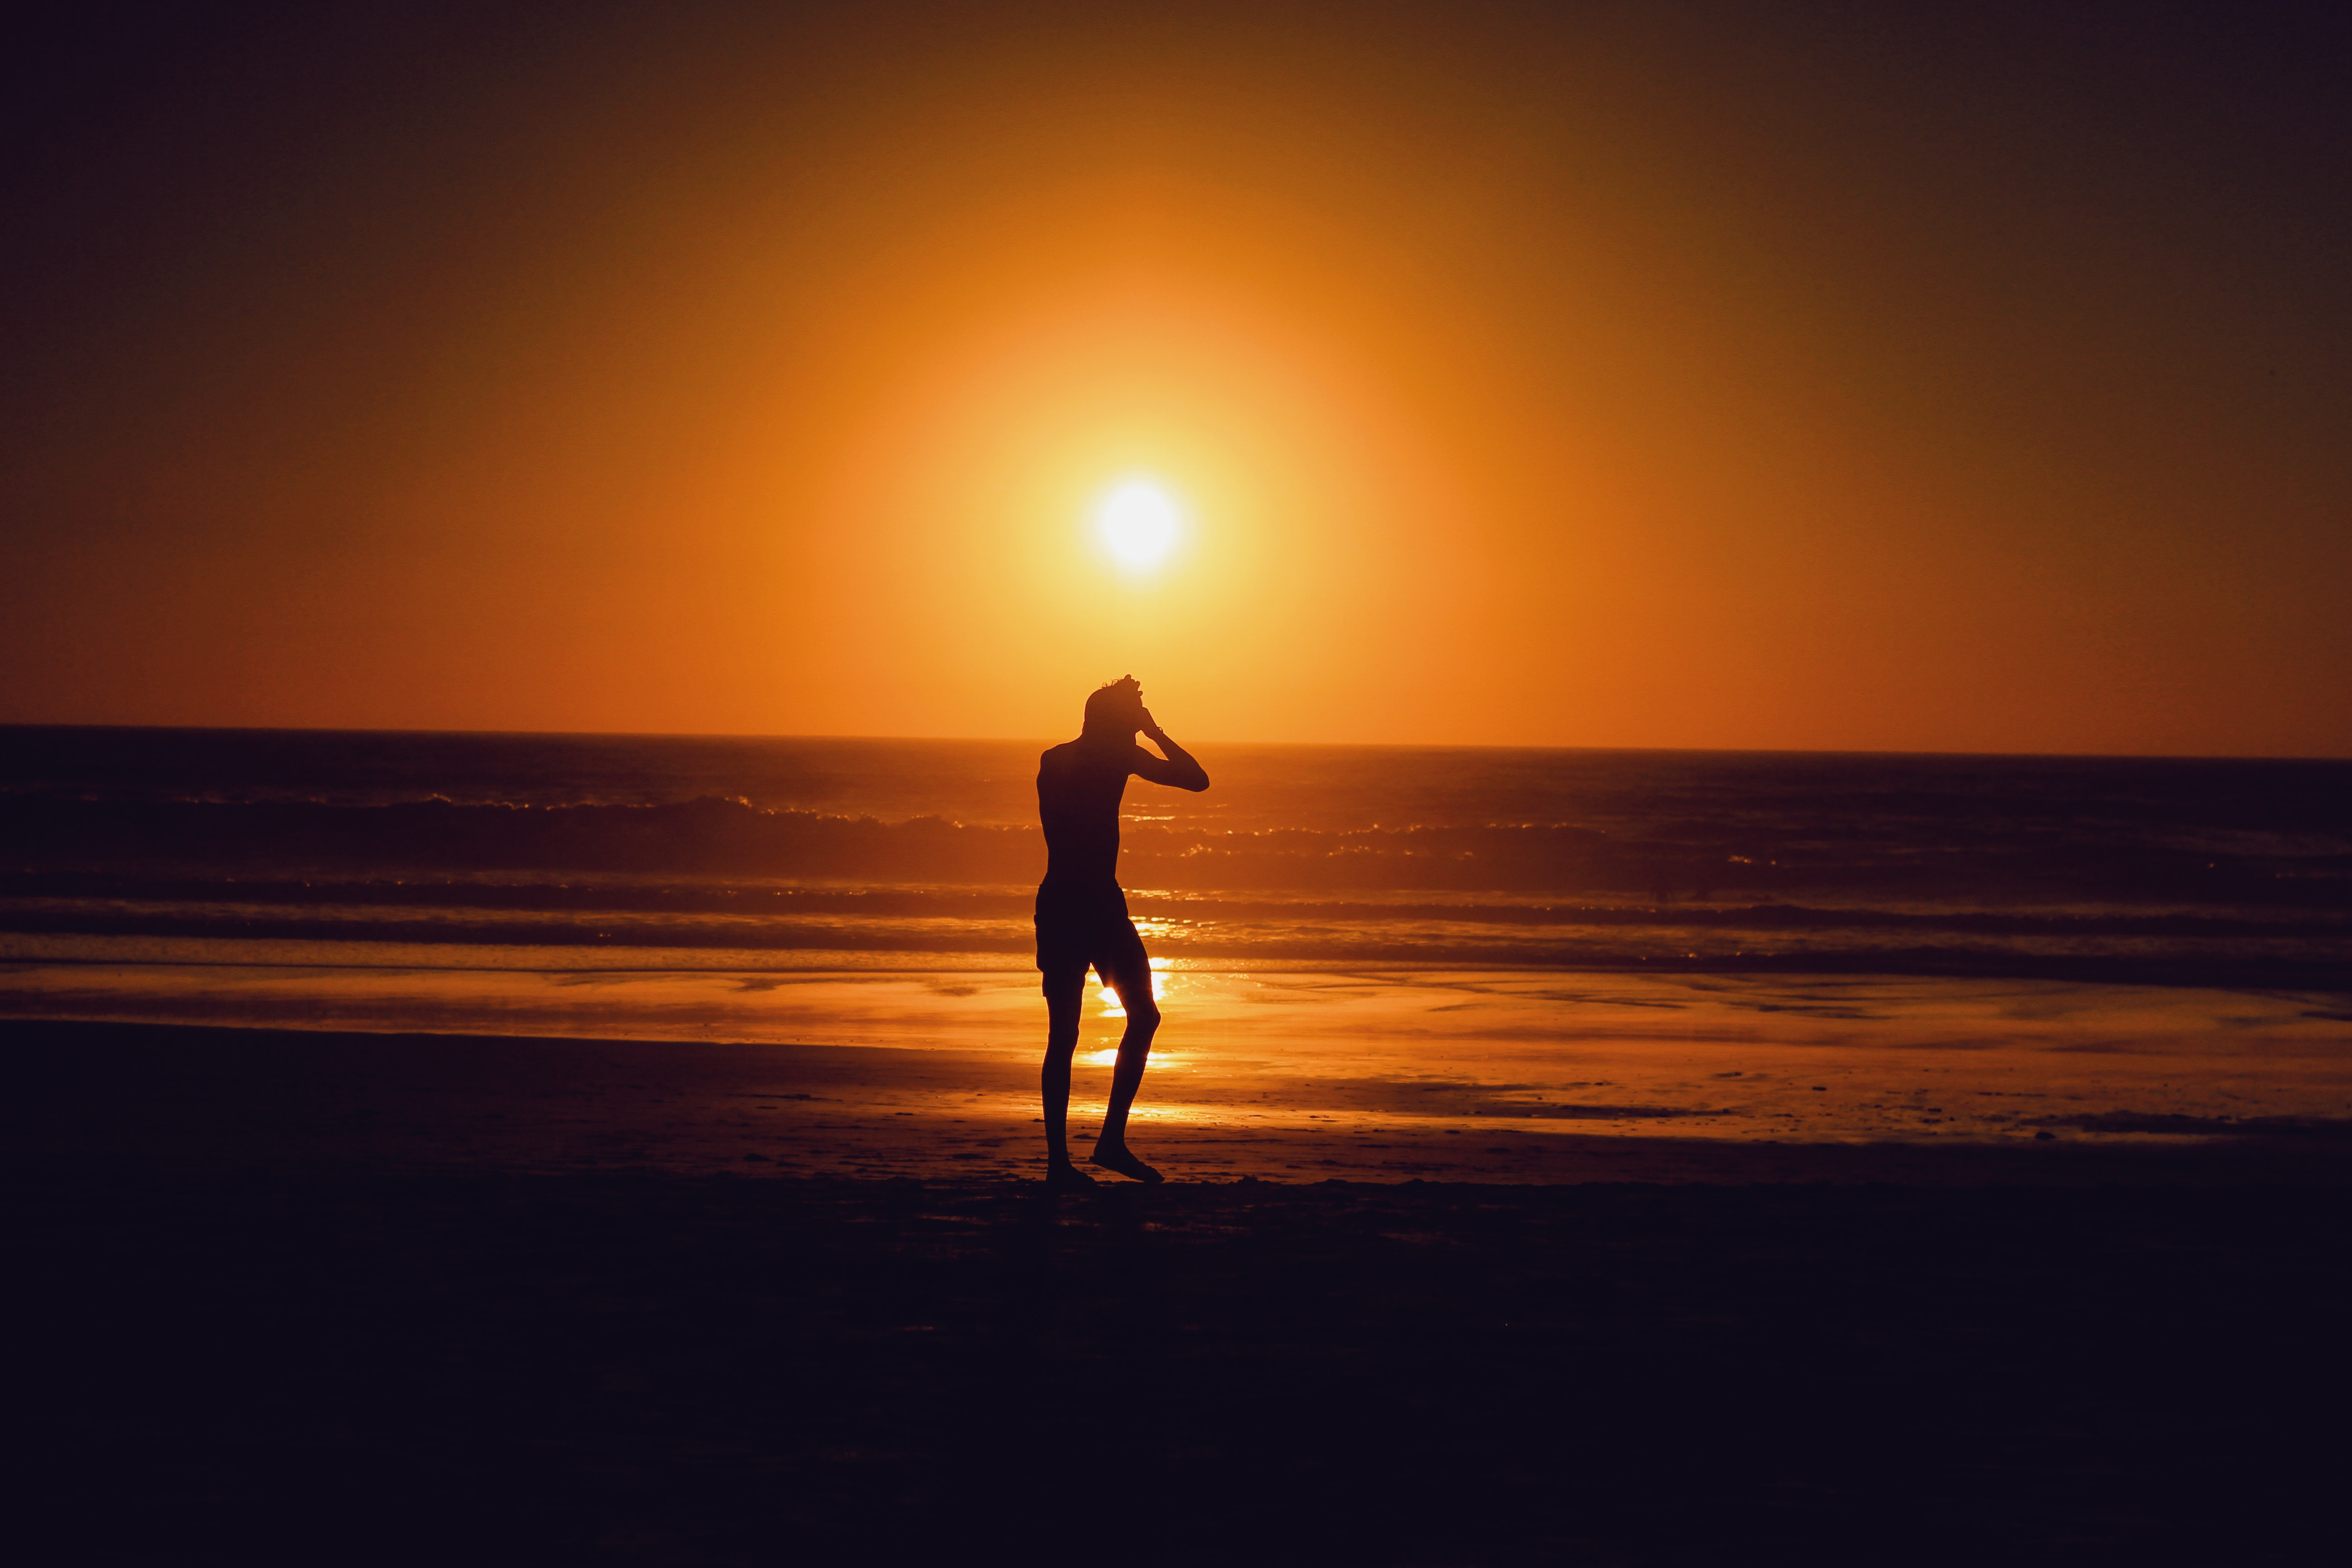 silhouette of person beside seashore during sunset